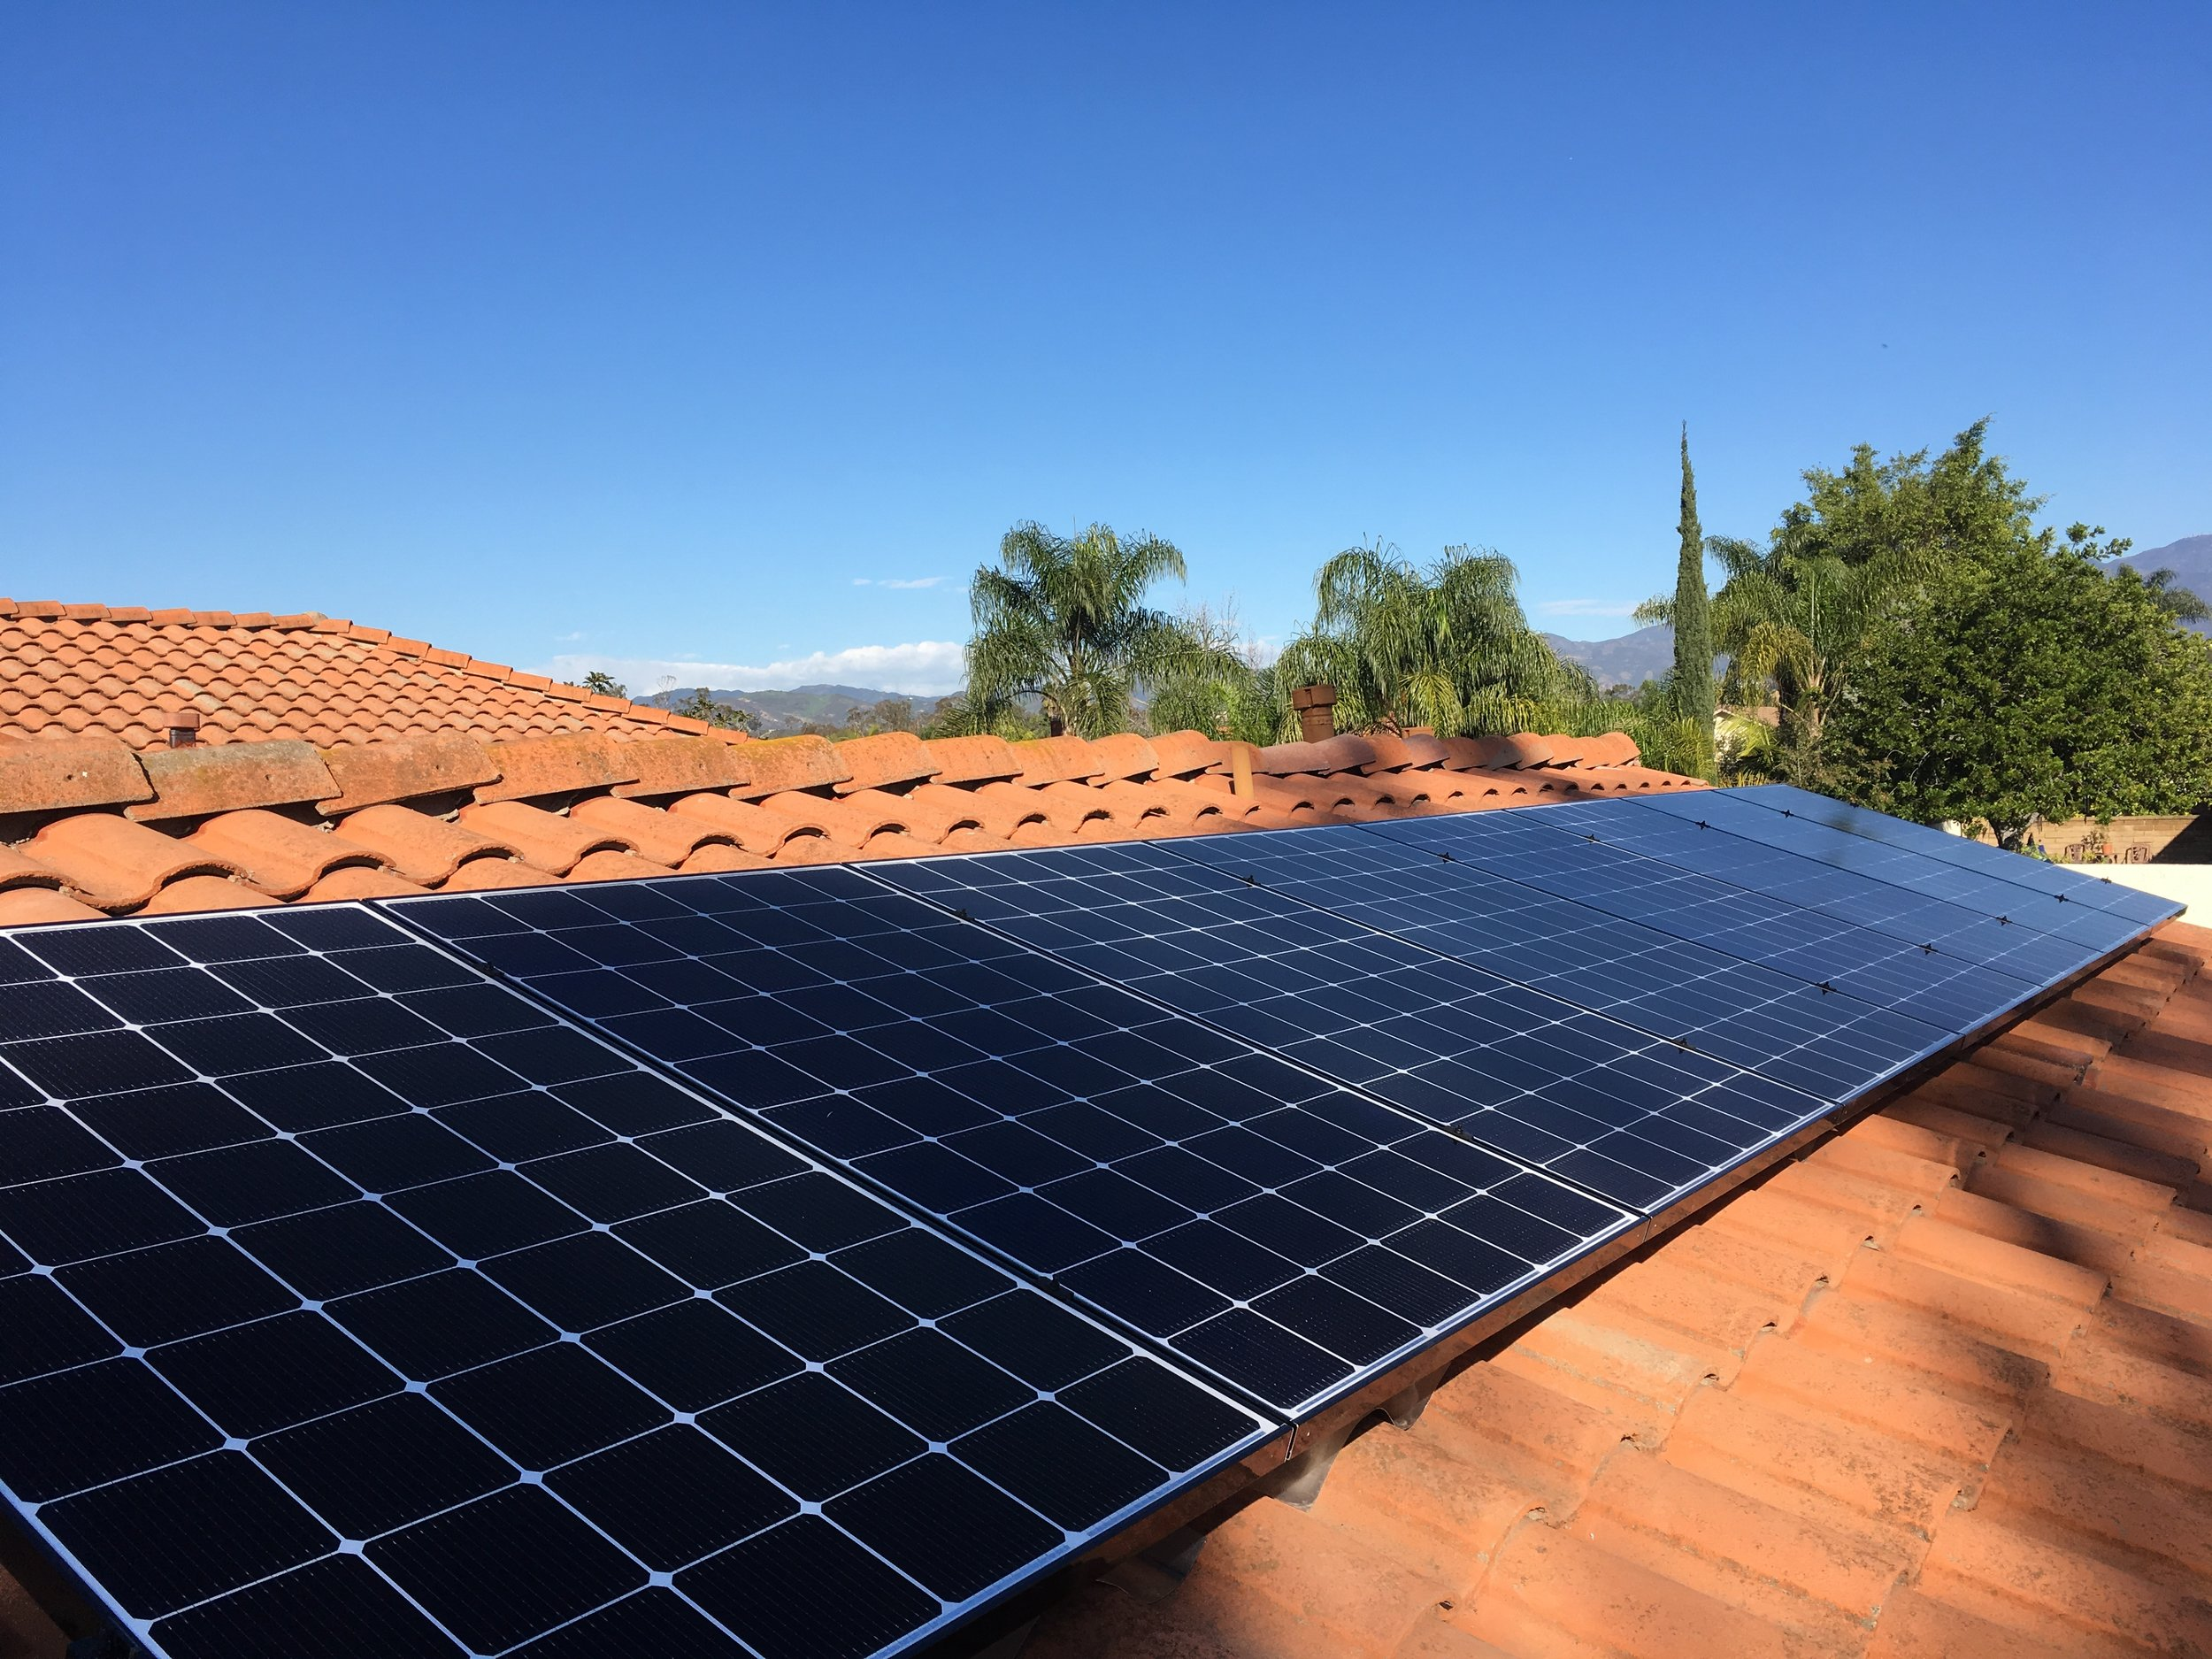 LAKE FOREST, CA - 8 high efficiency PV modules total to 2.6 kWDC in Lake Forest, CA.  The system was commissioned in 2017.  The system is estimated to save the home owner $16,000 in electricity bill over 25 years.